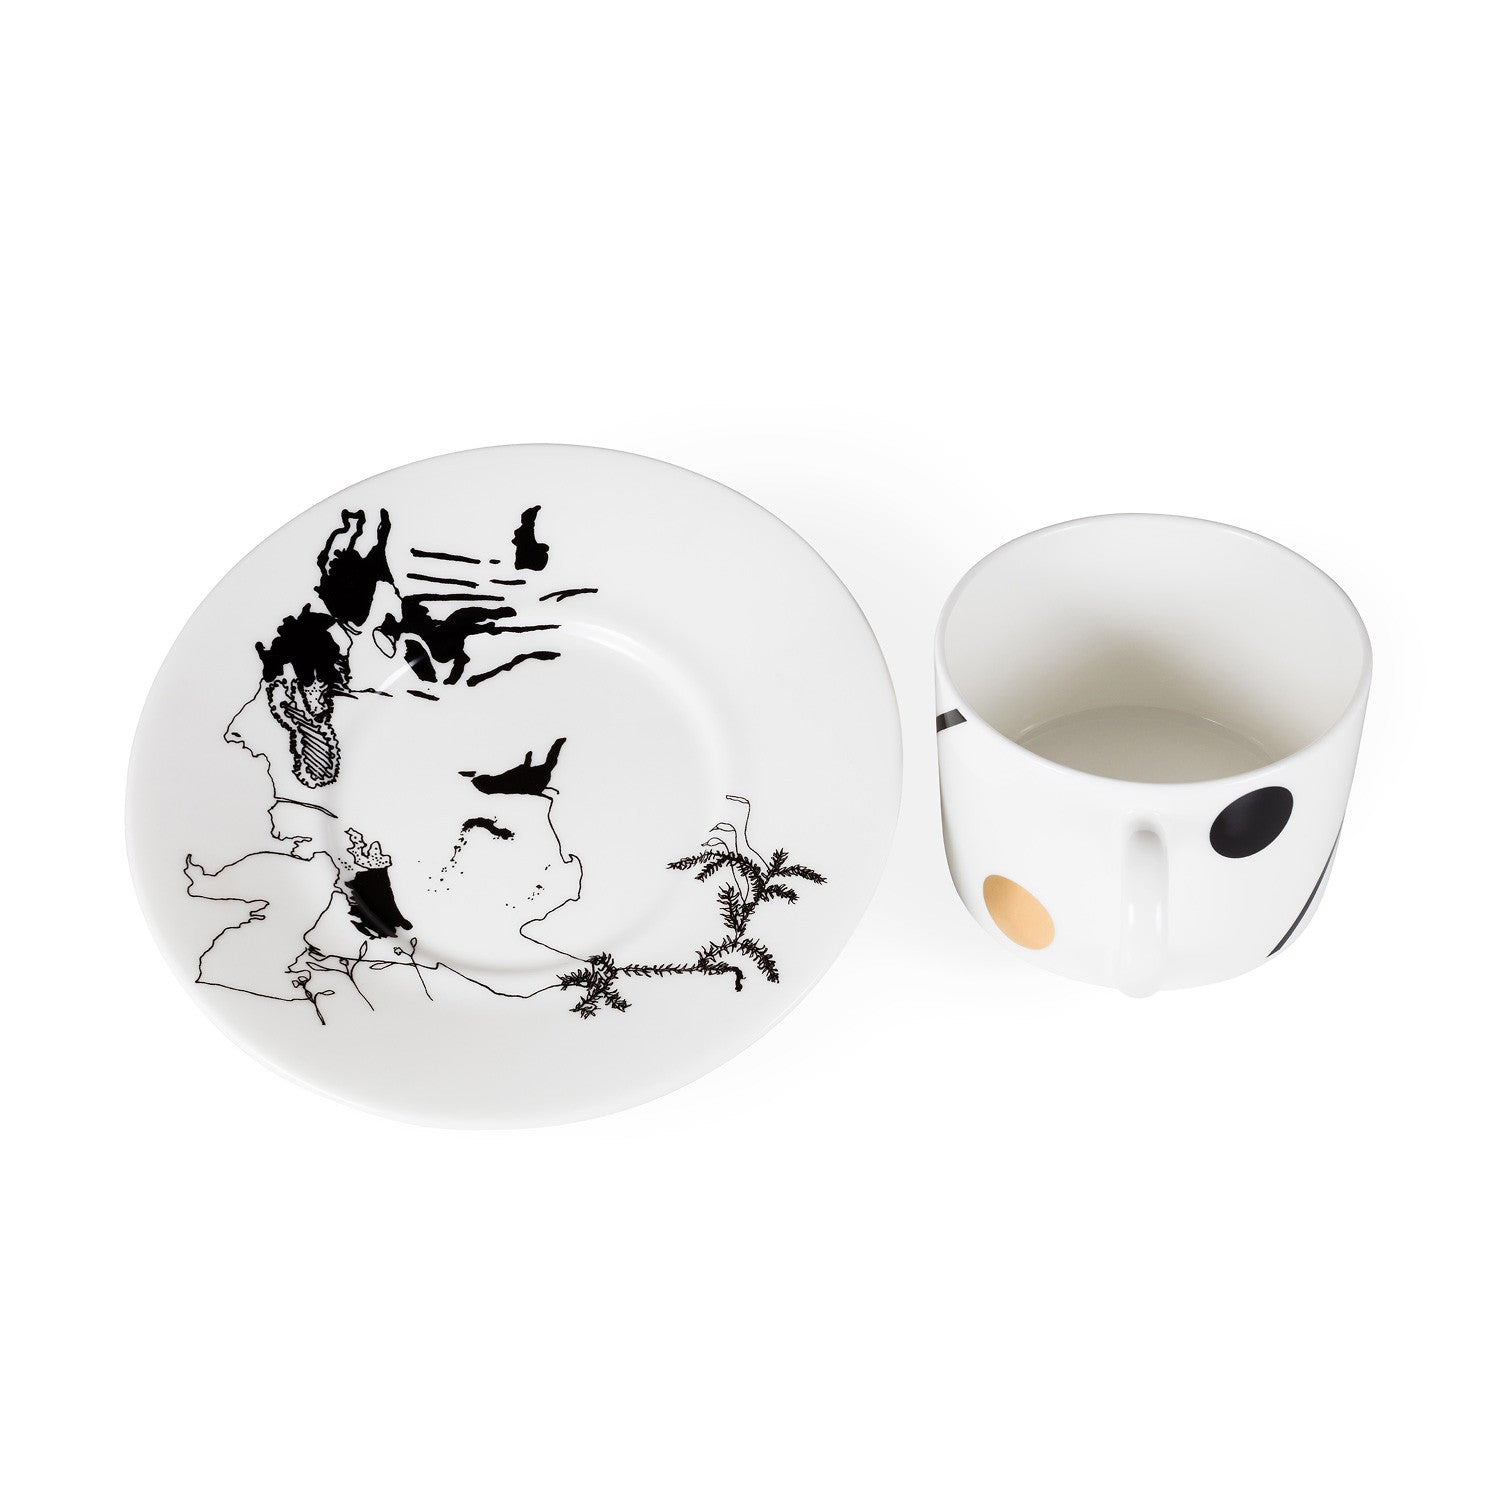 Stag Cup & Saucer - Harley Boden